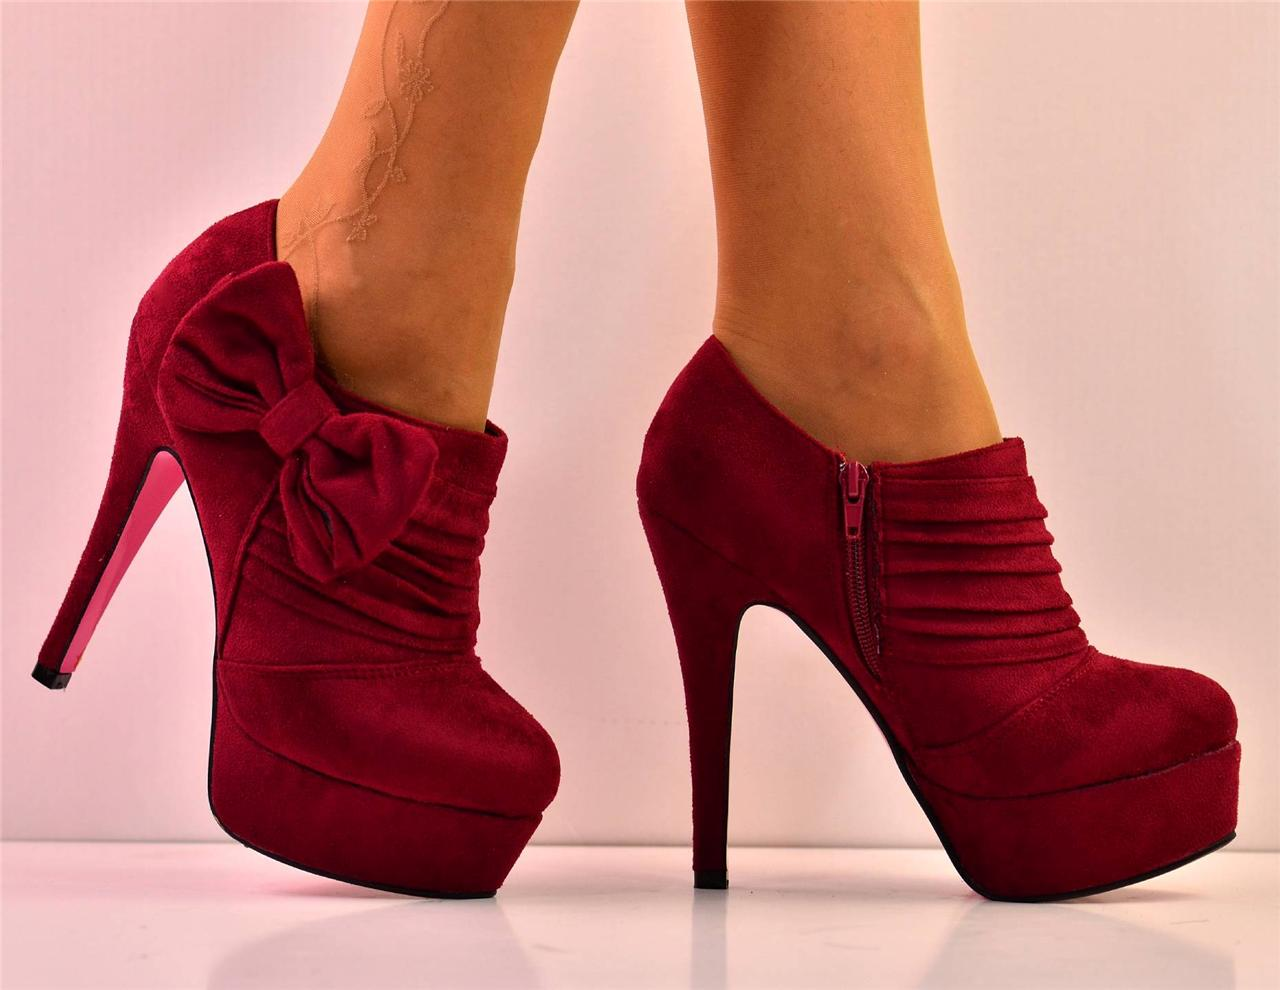 new size uk 7 maroon bow suede platform high